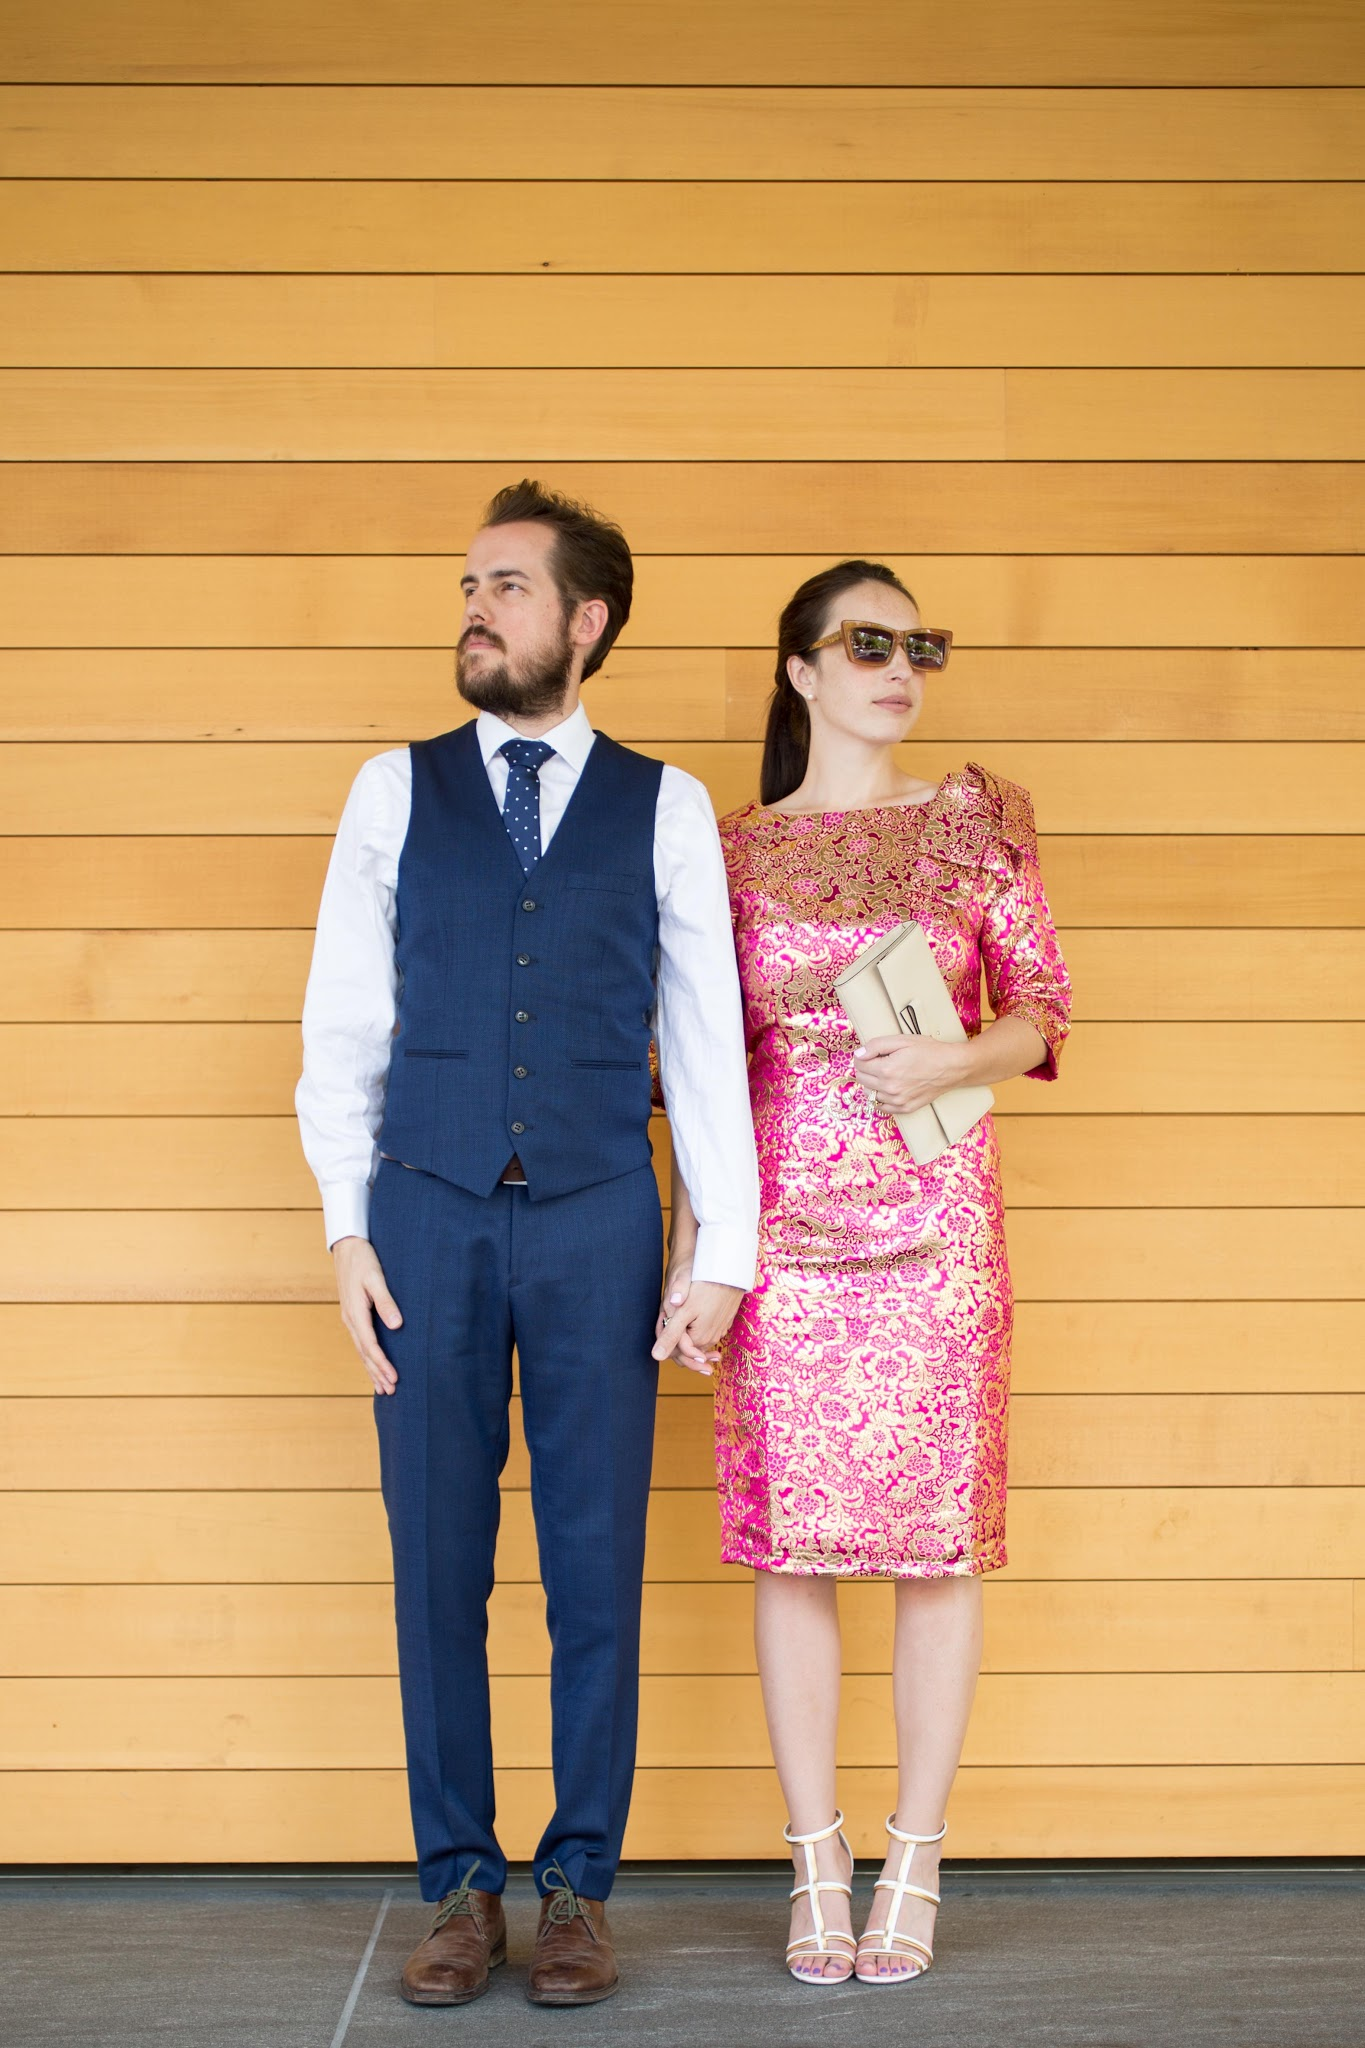 Navy Suit and a Brocade Dress